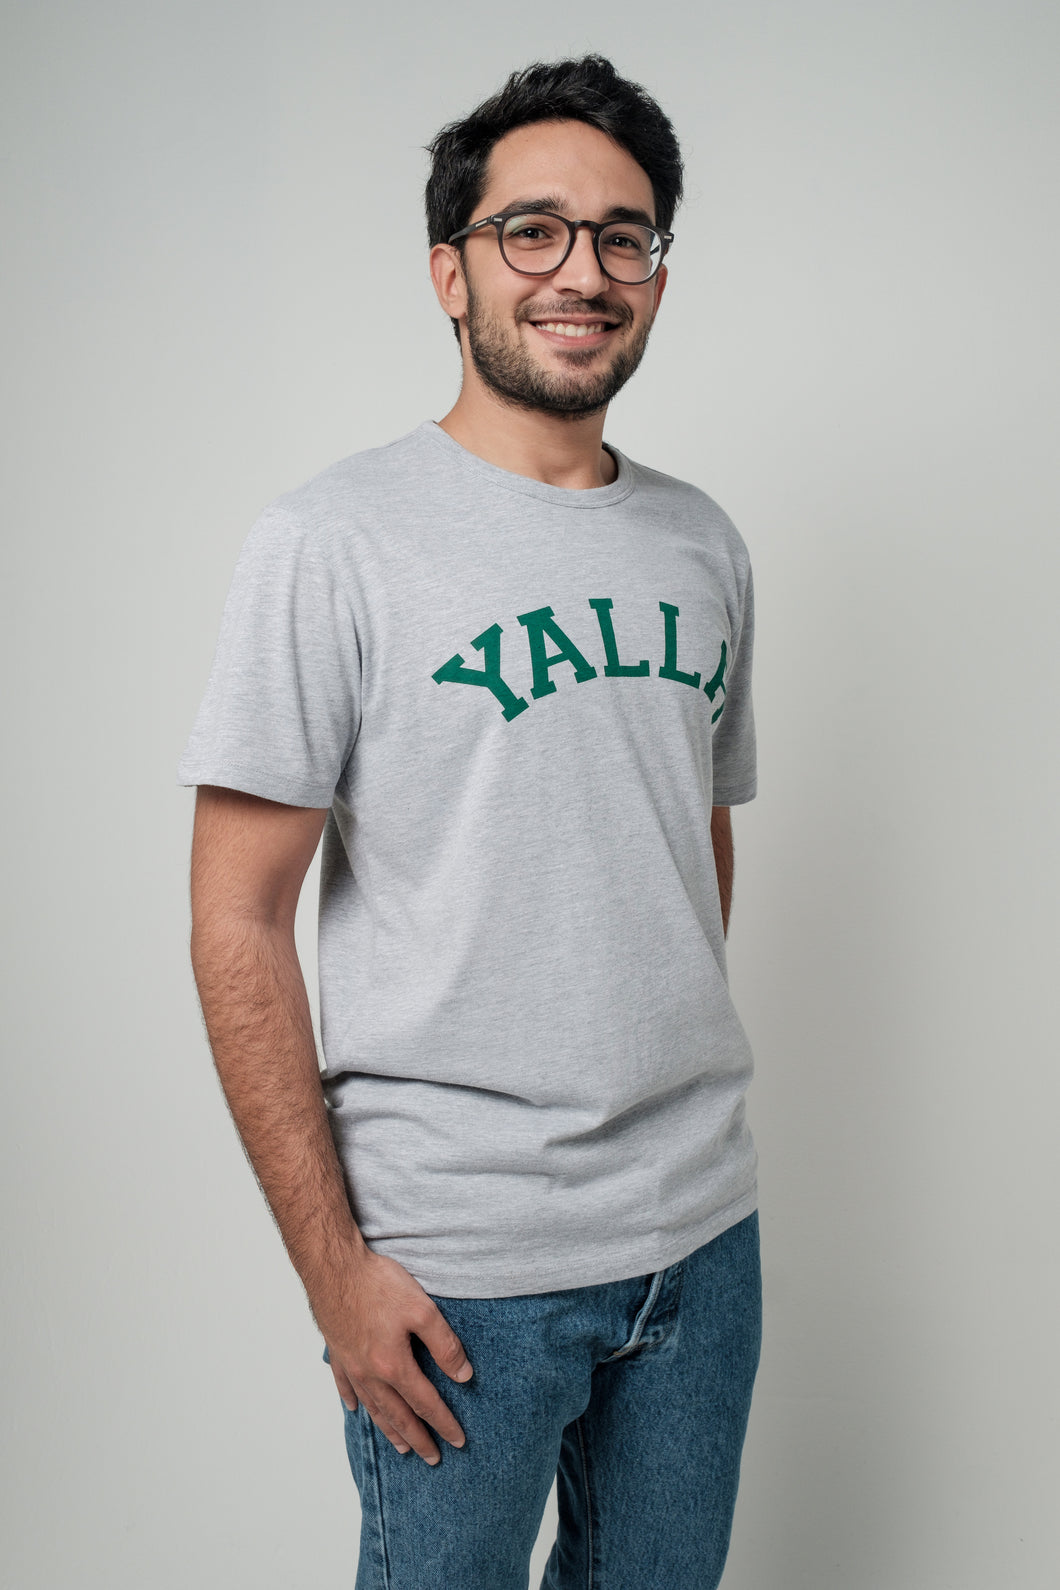 The Yalla University Tee (Him)